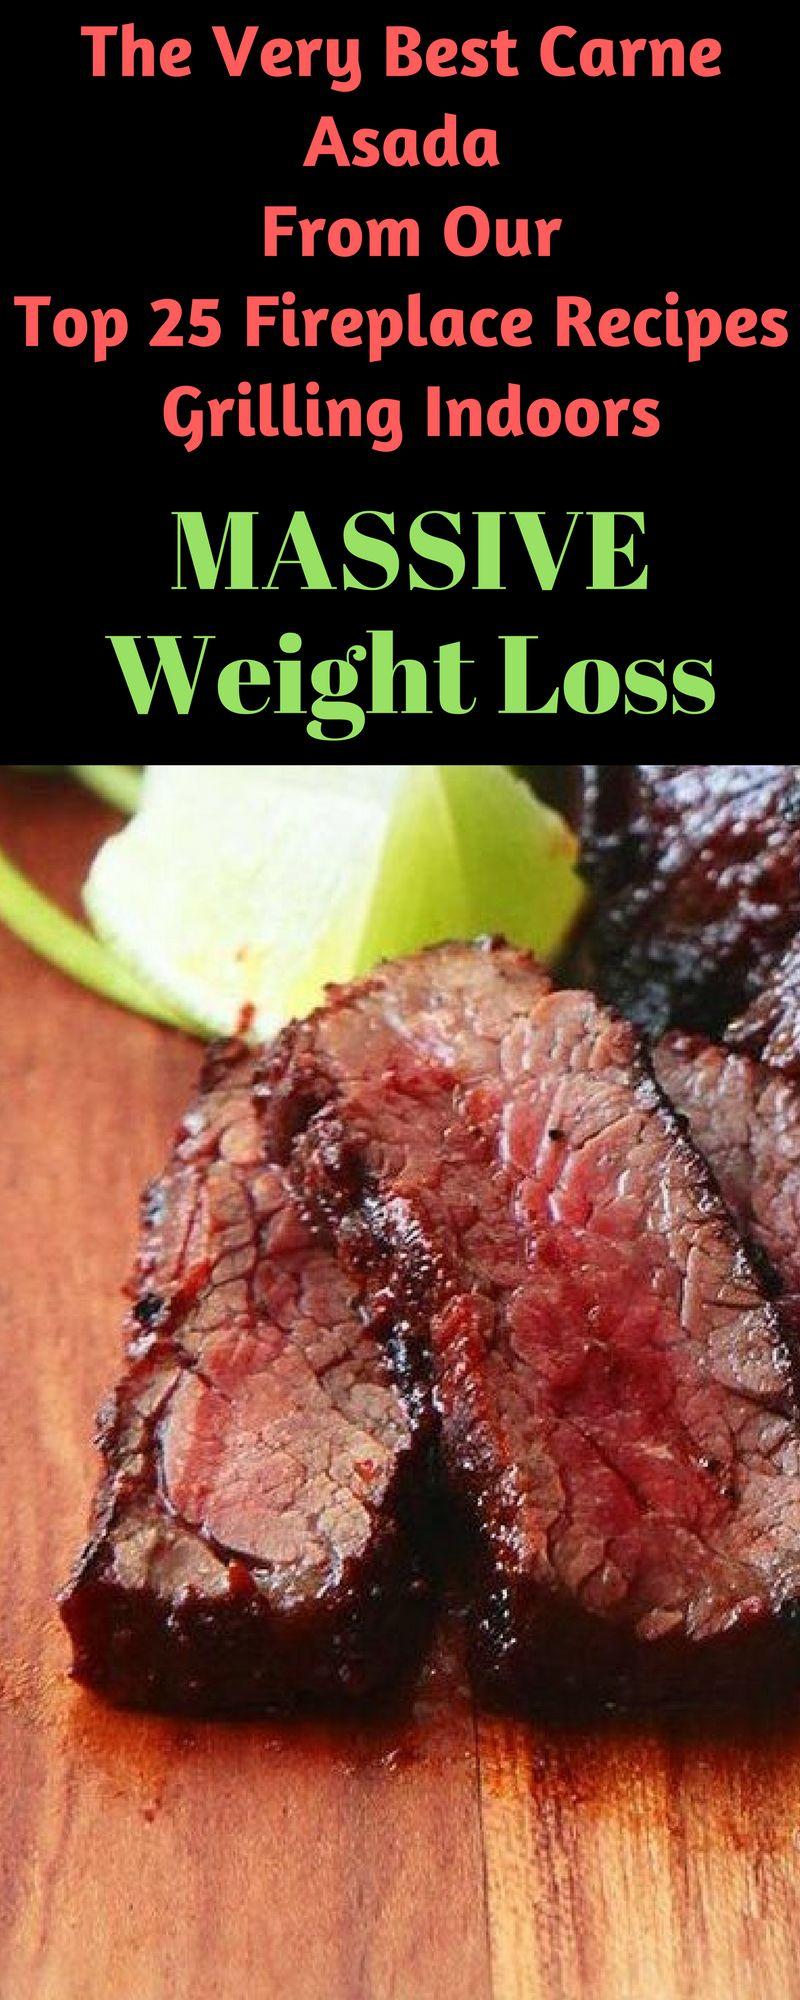 Weight loss sherman oaks photo 10